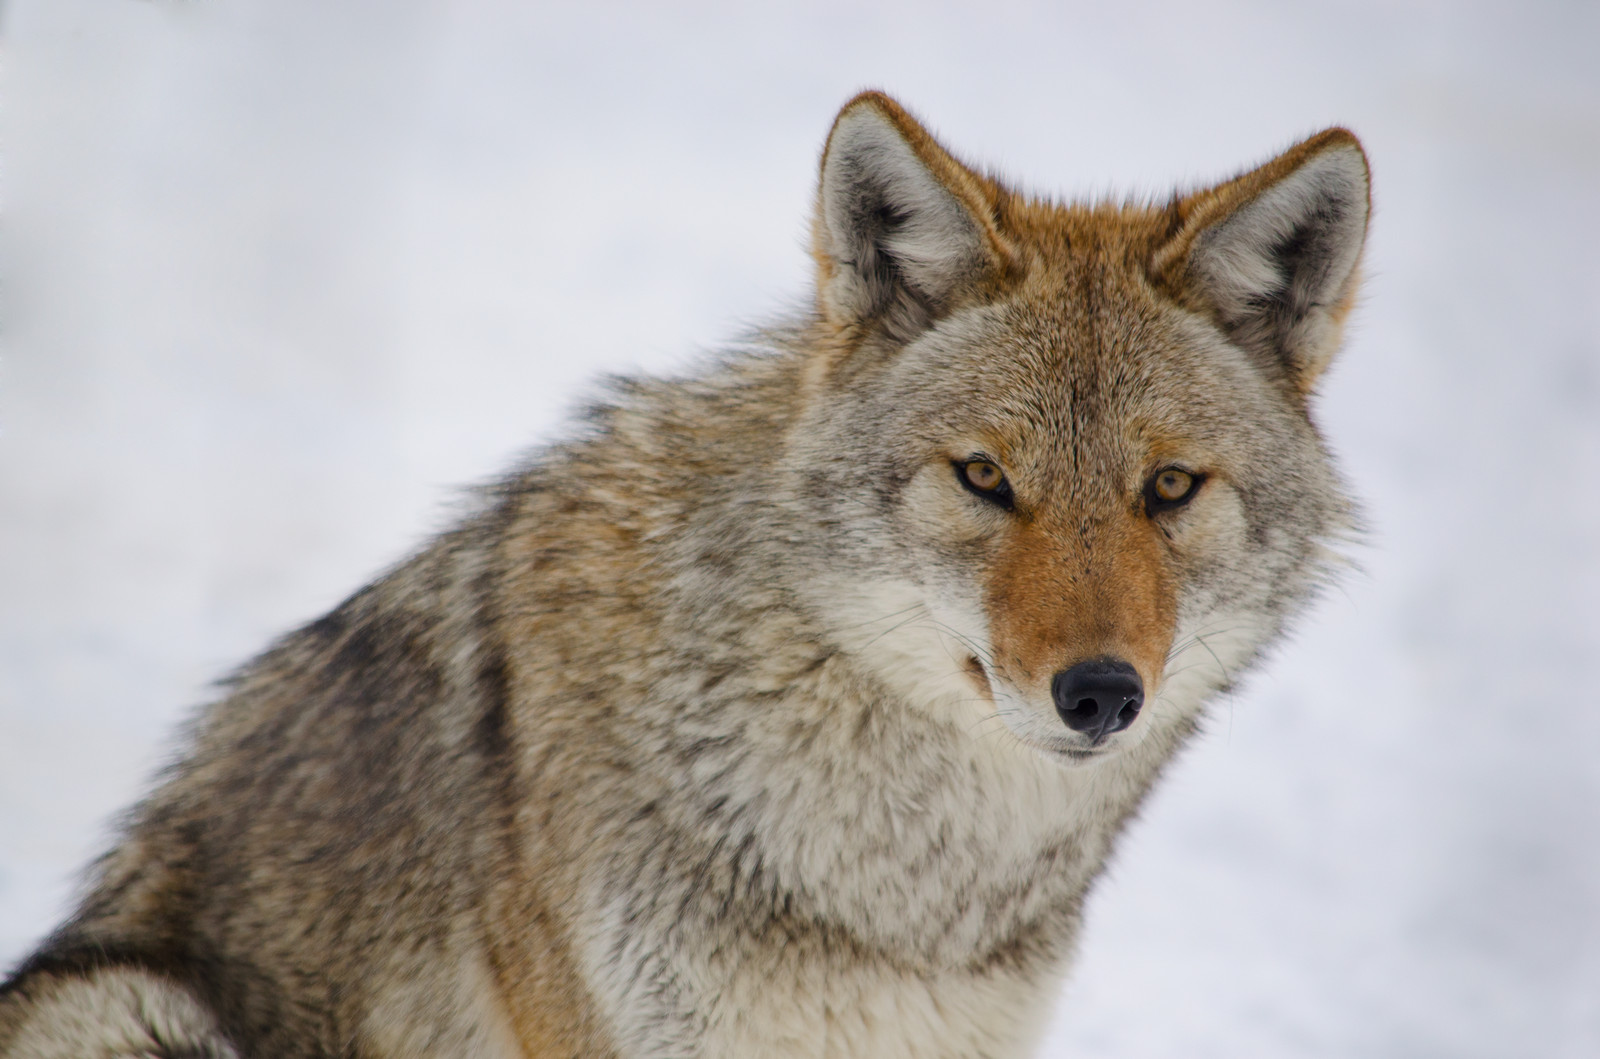 Photo of coyote courtesy of © Can Stock Photo Inc. / marcbruxelle